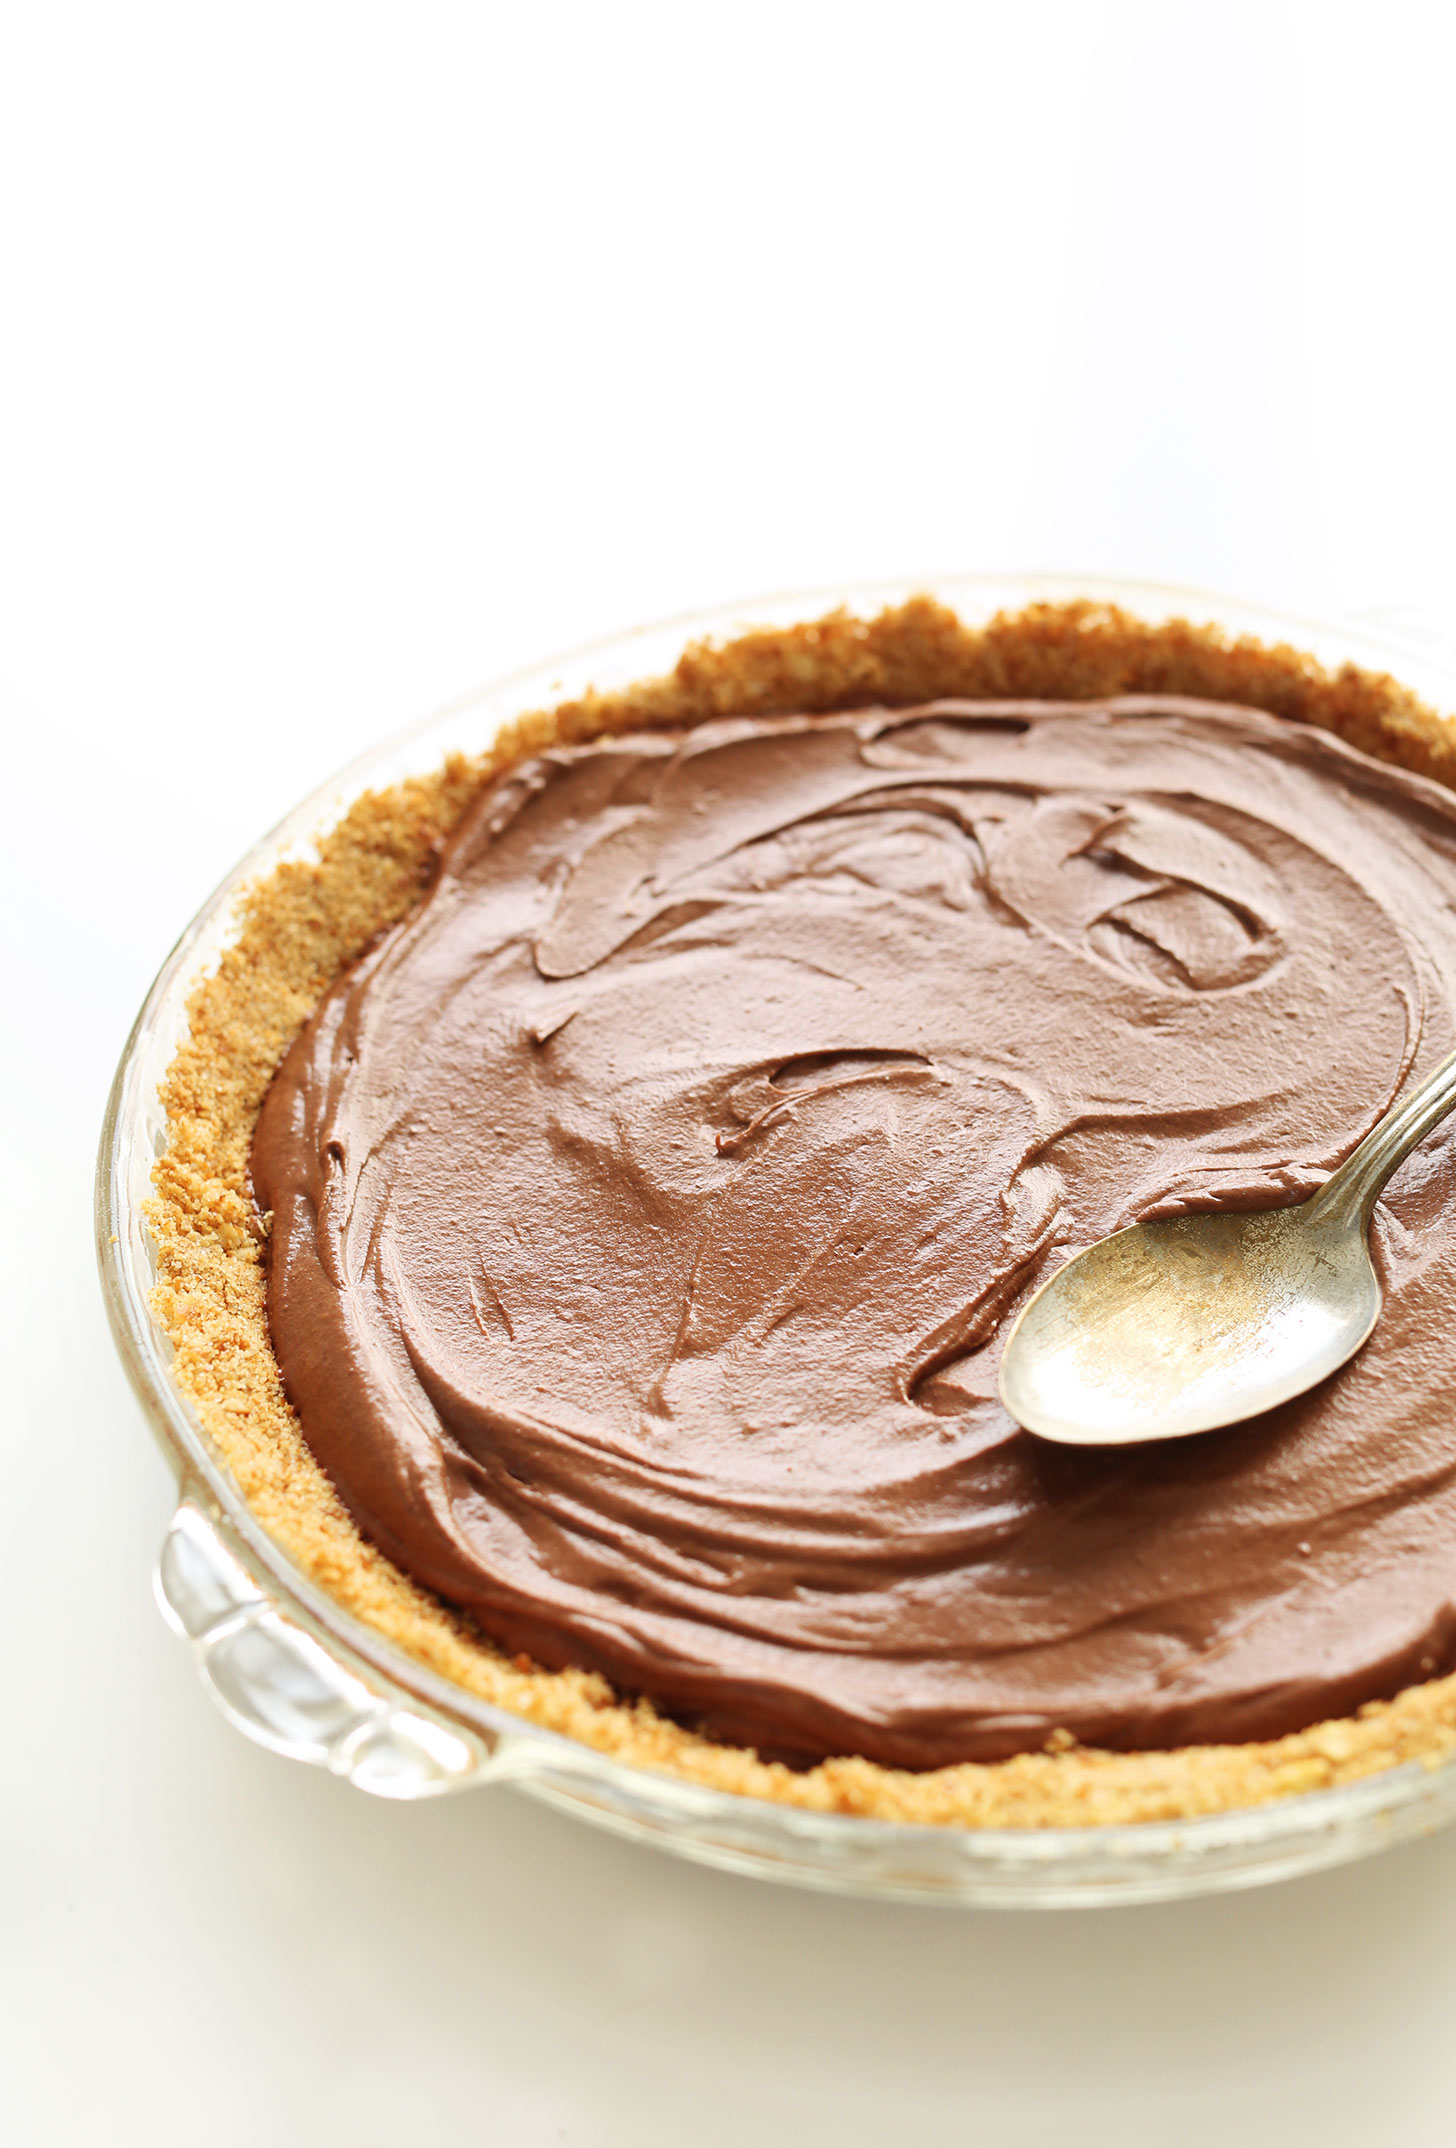 Using the back of a spoon to even out the chocolate filling of our vegan pie